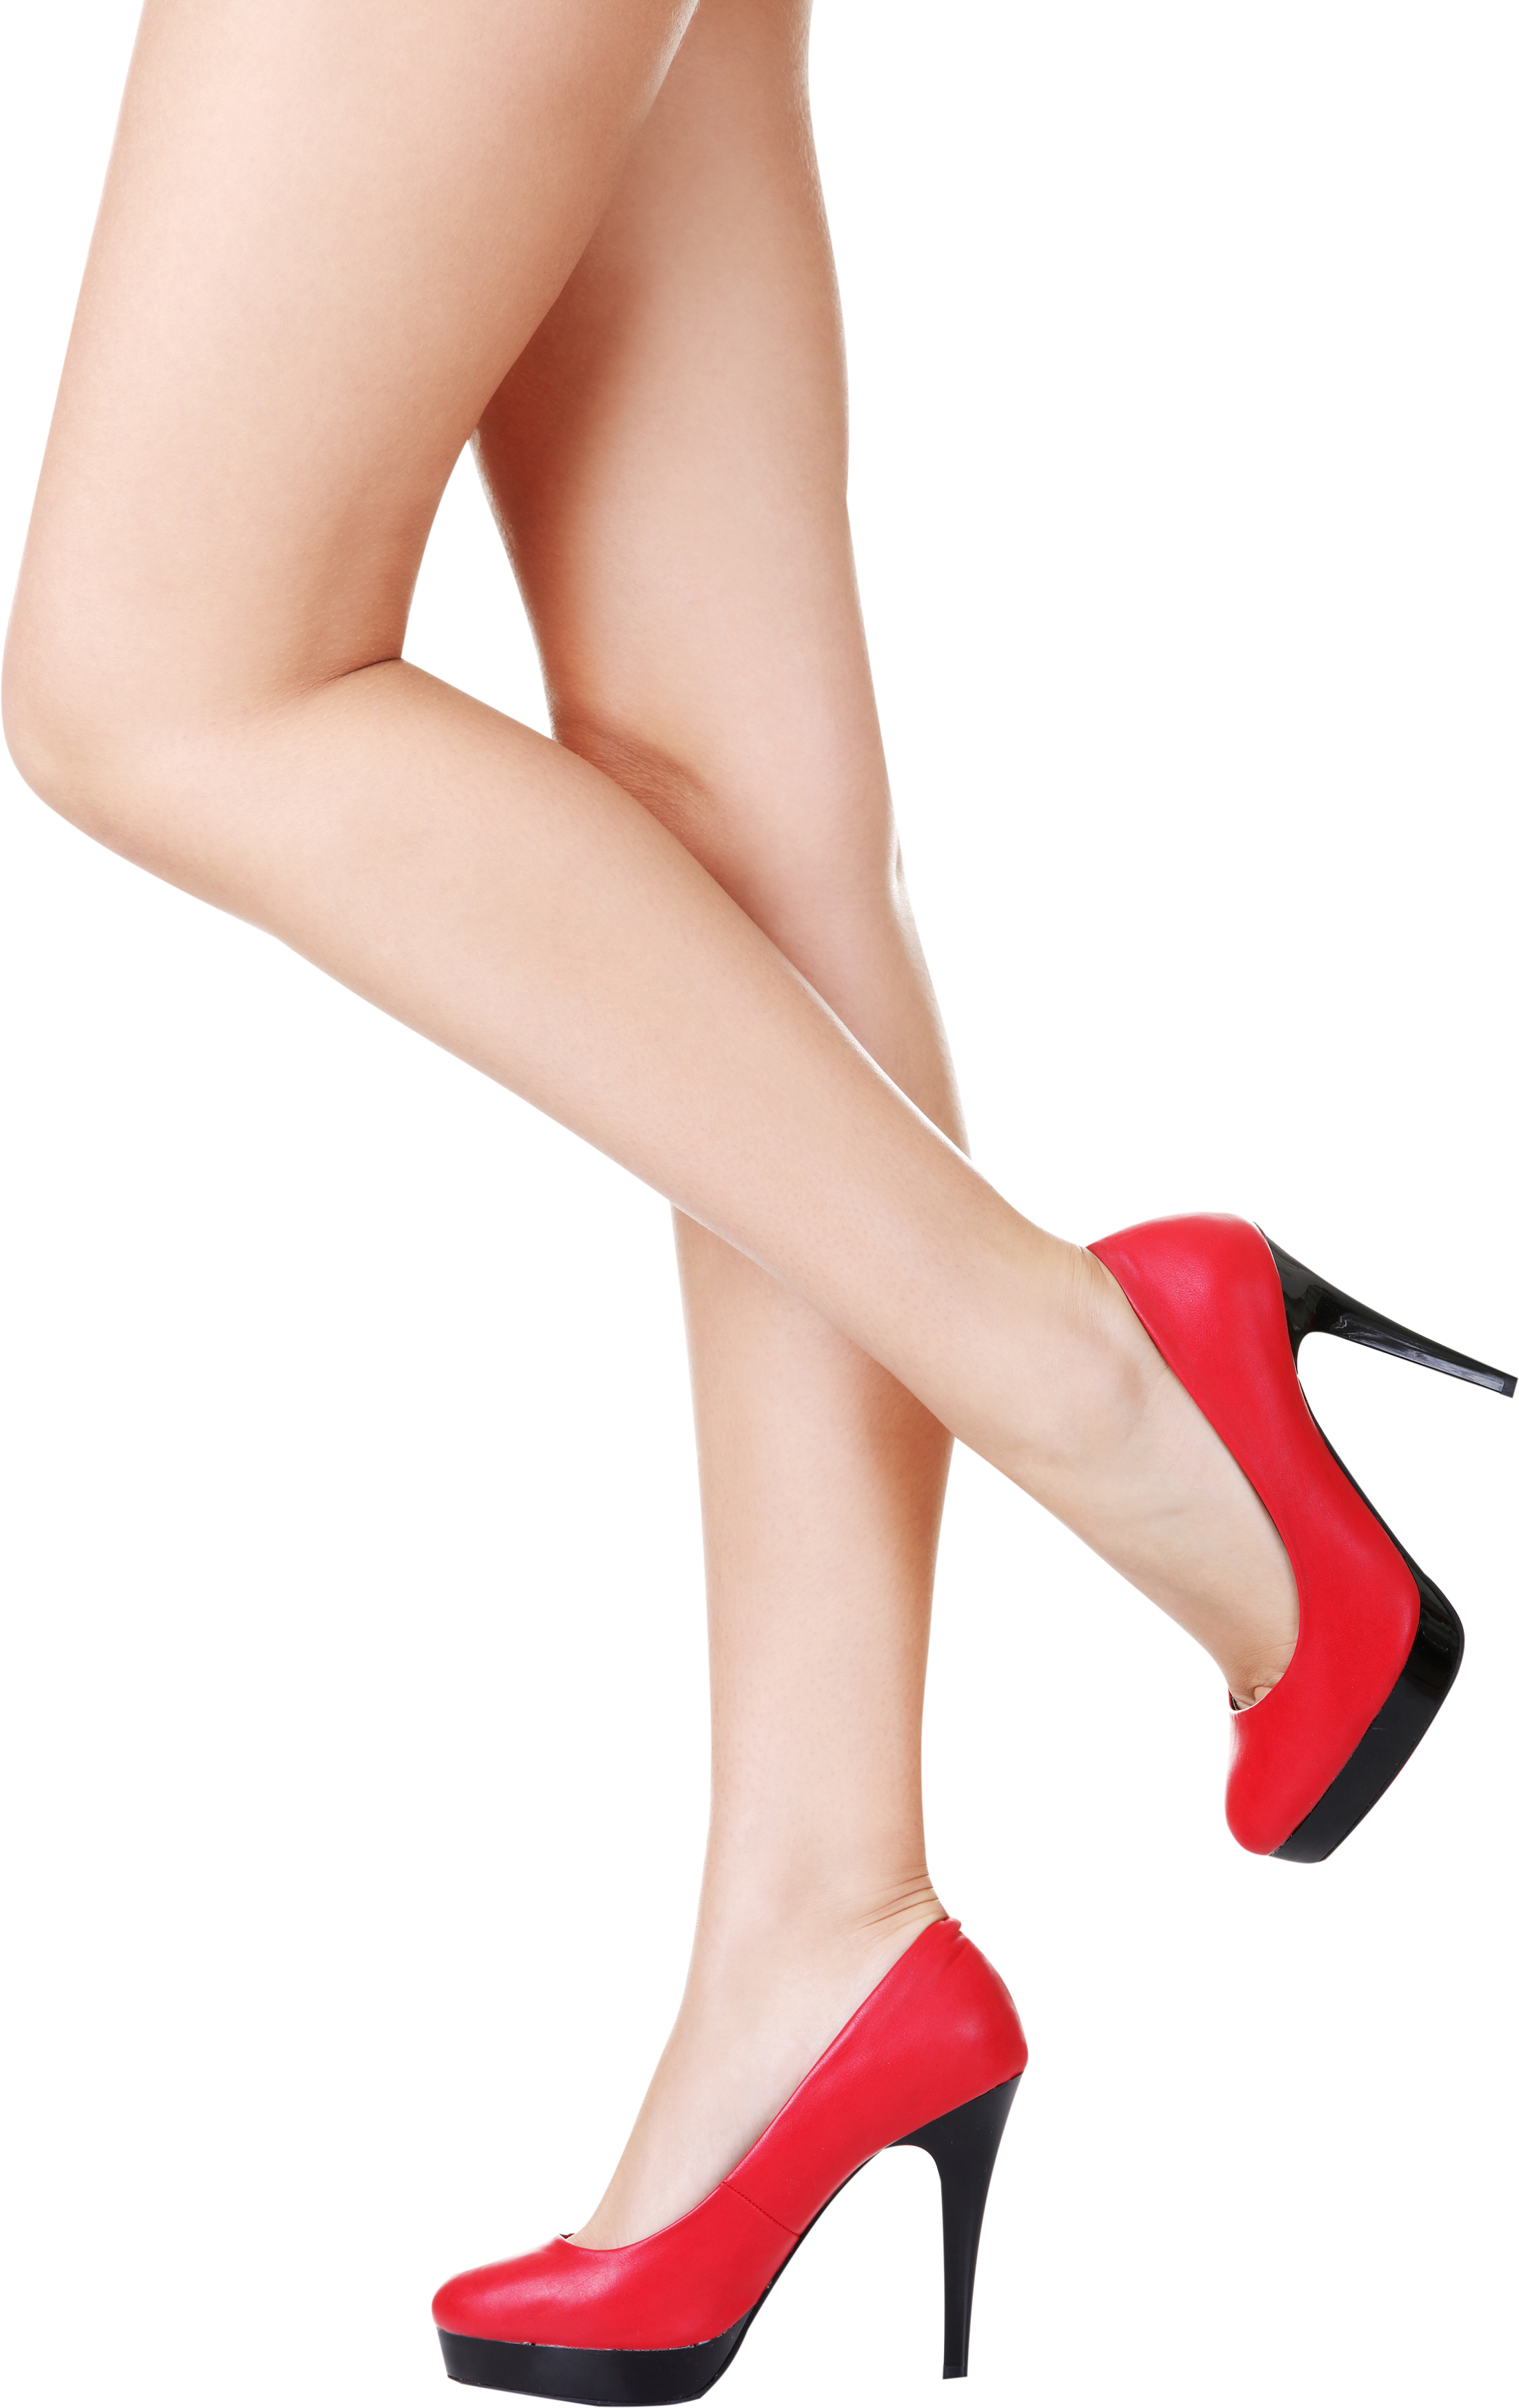 Female legs png. Images free download women